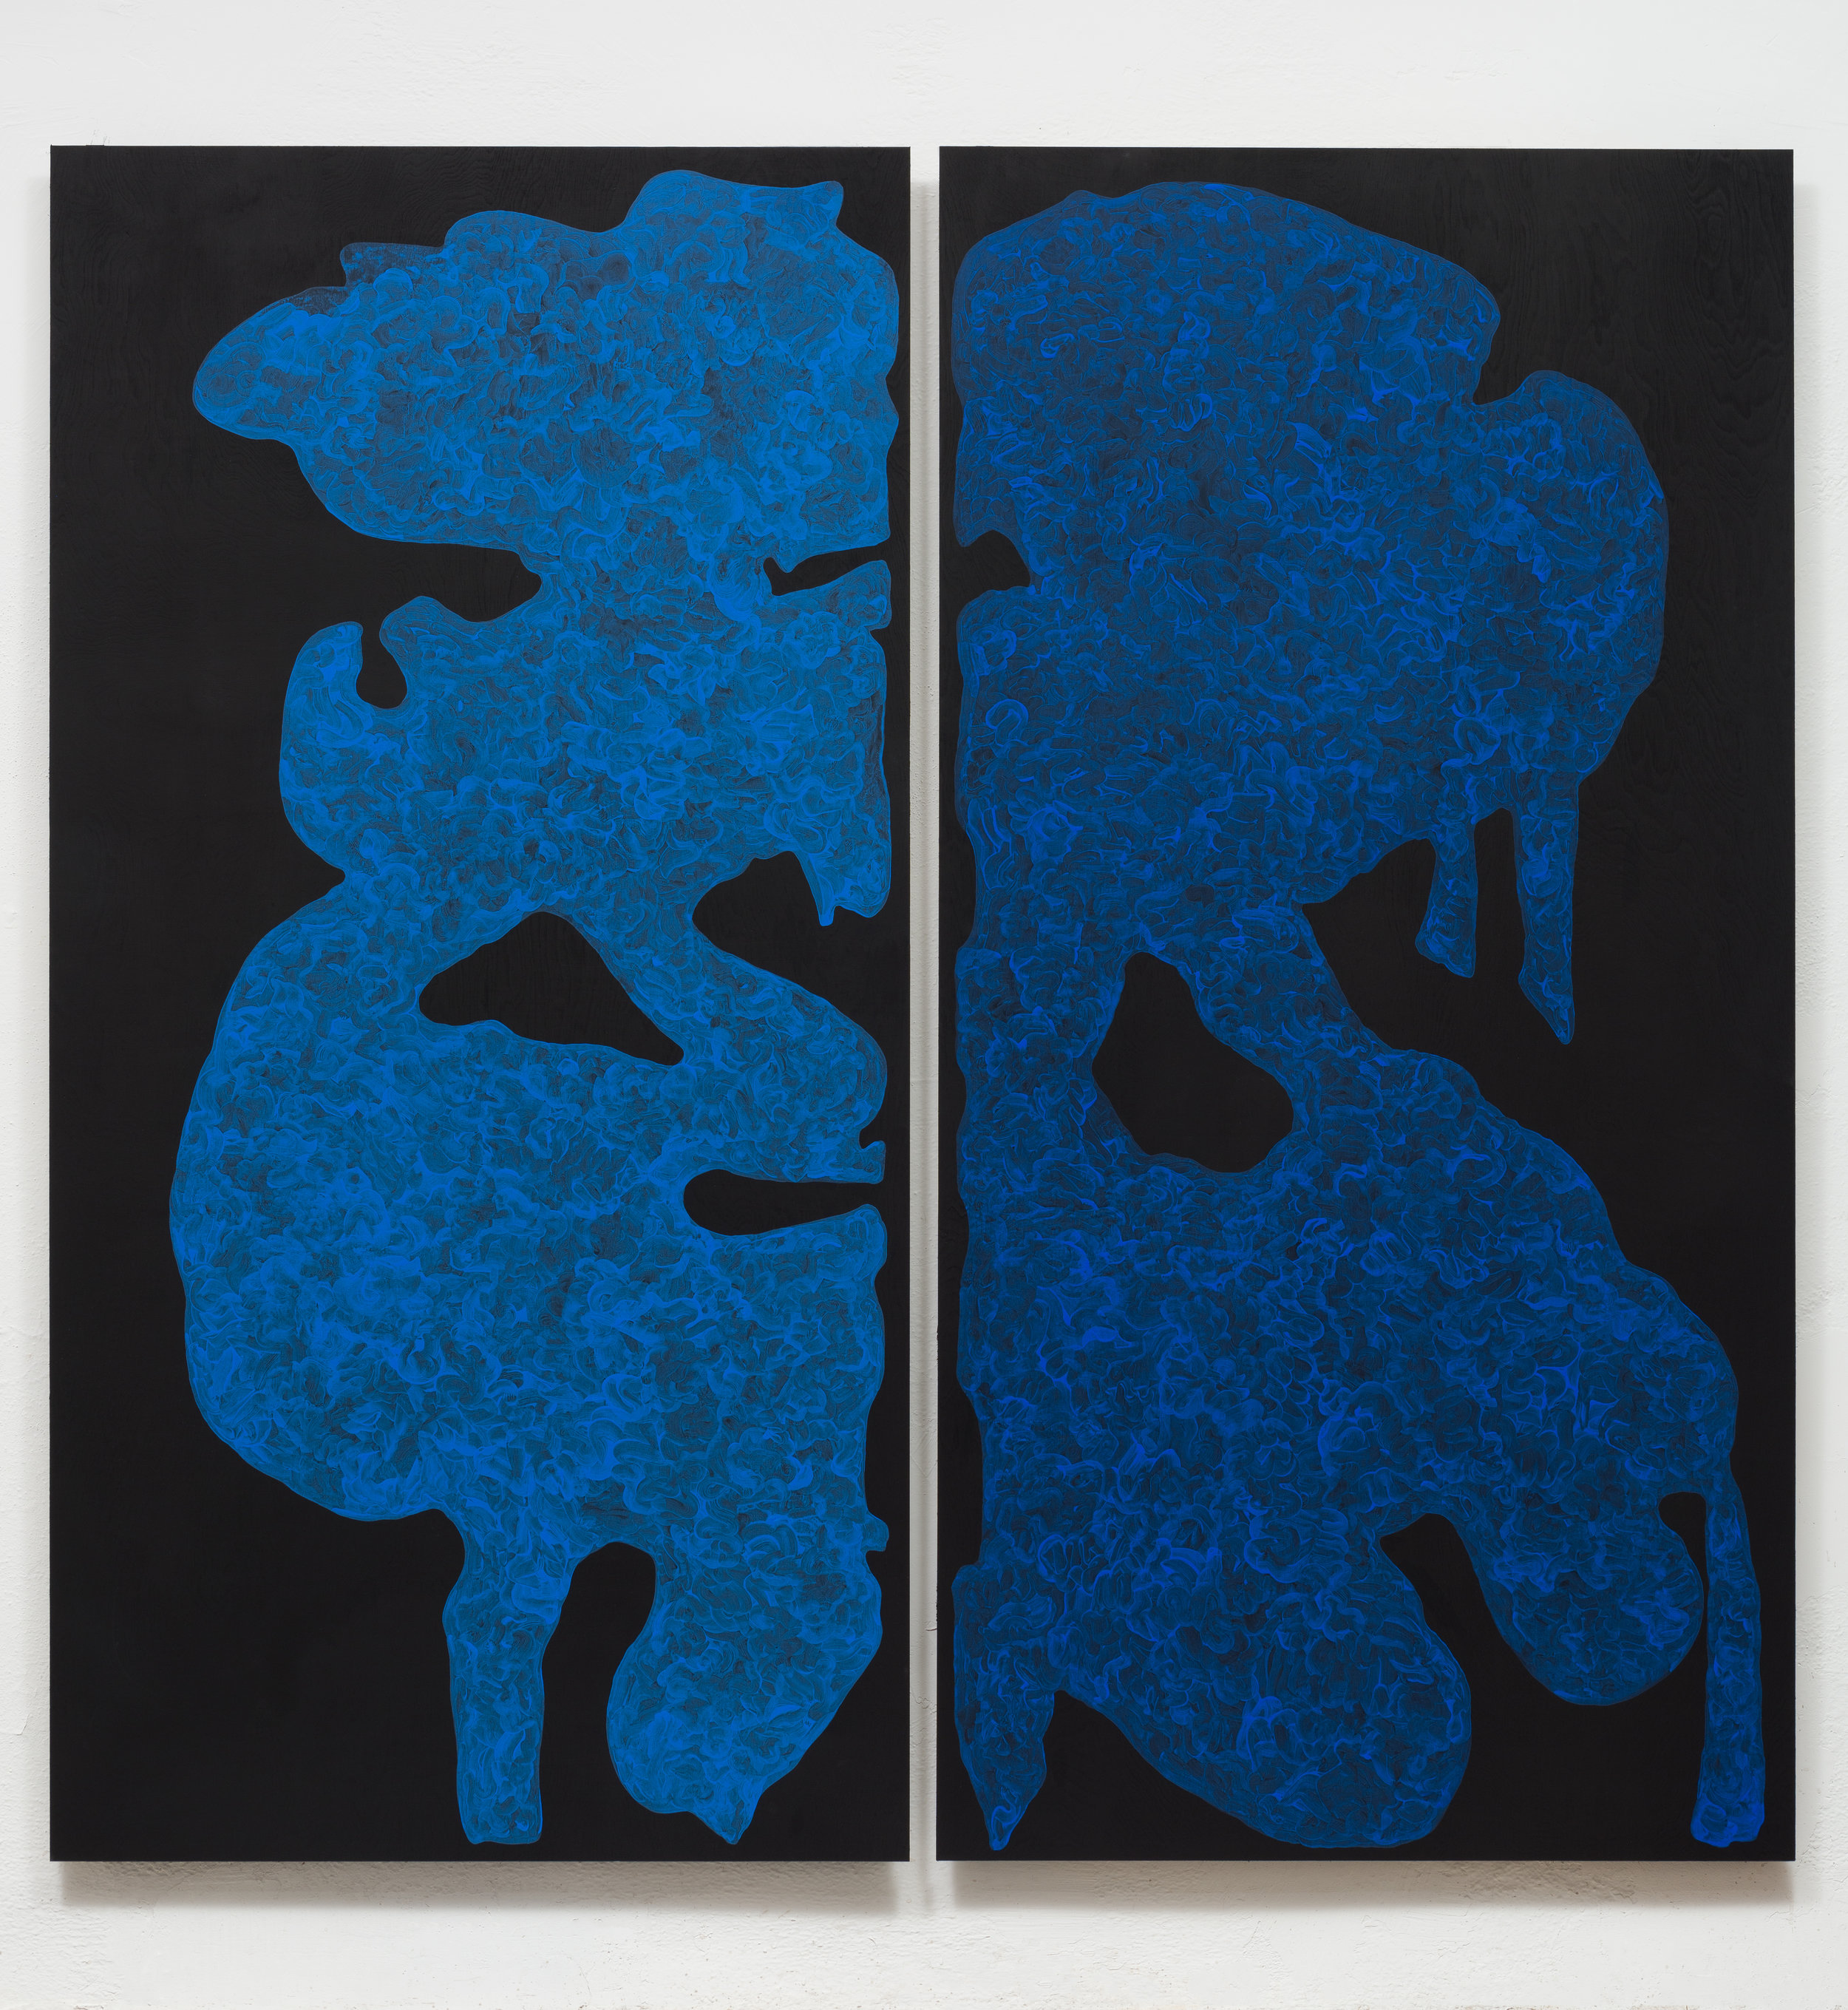 Monique Prieto,  Blue Set , 2017, acrylic on panel, 72.5 x 72.5 inches (diptych)